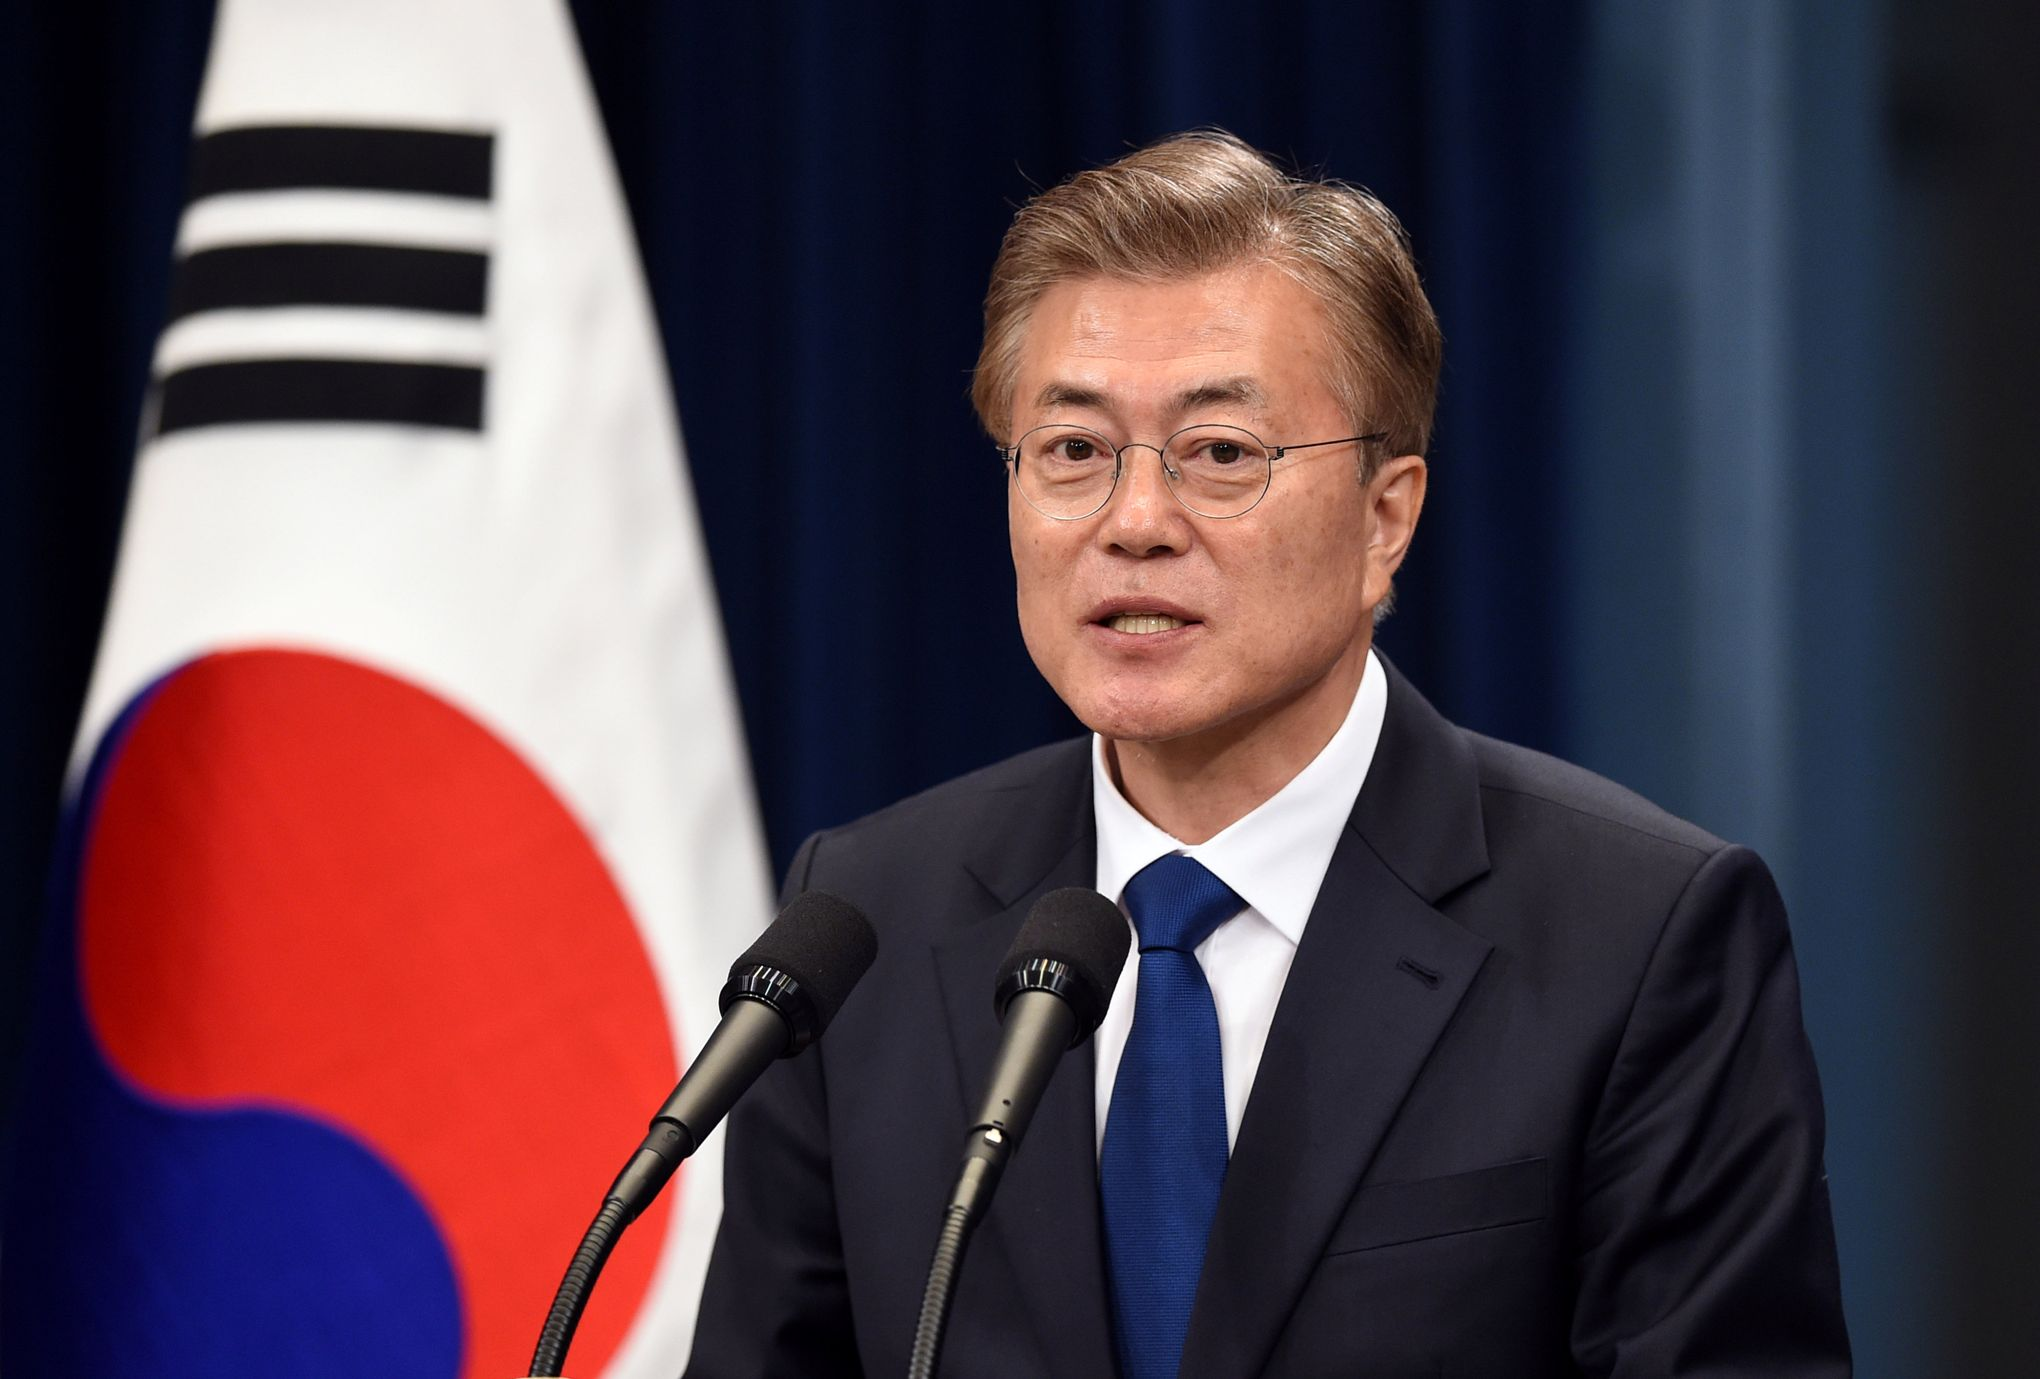 Le président Sud Coréen Moon Jae-in./ Credit photo: Le Figaro